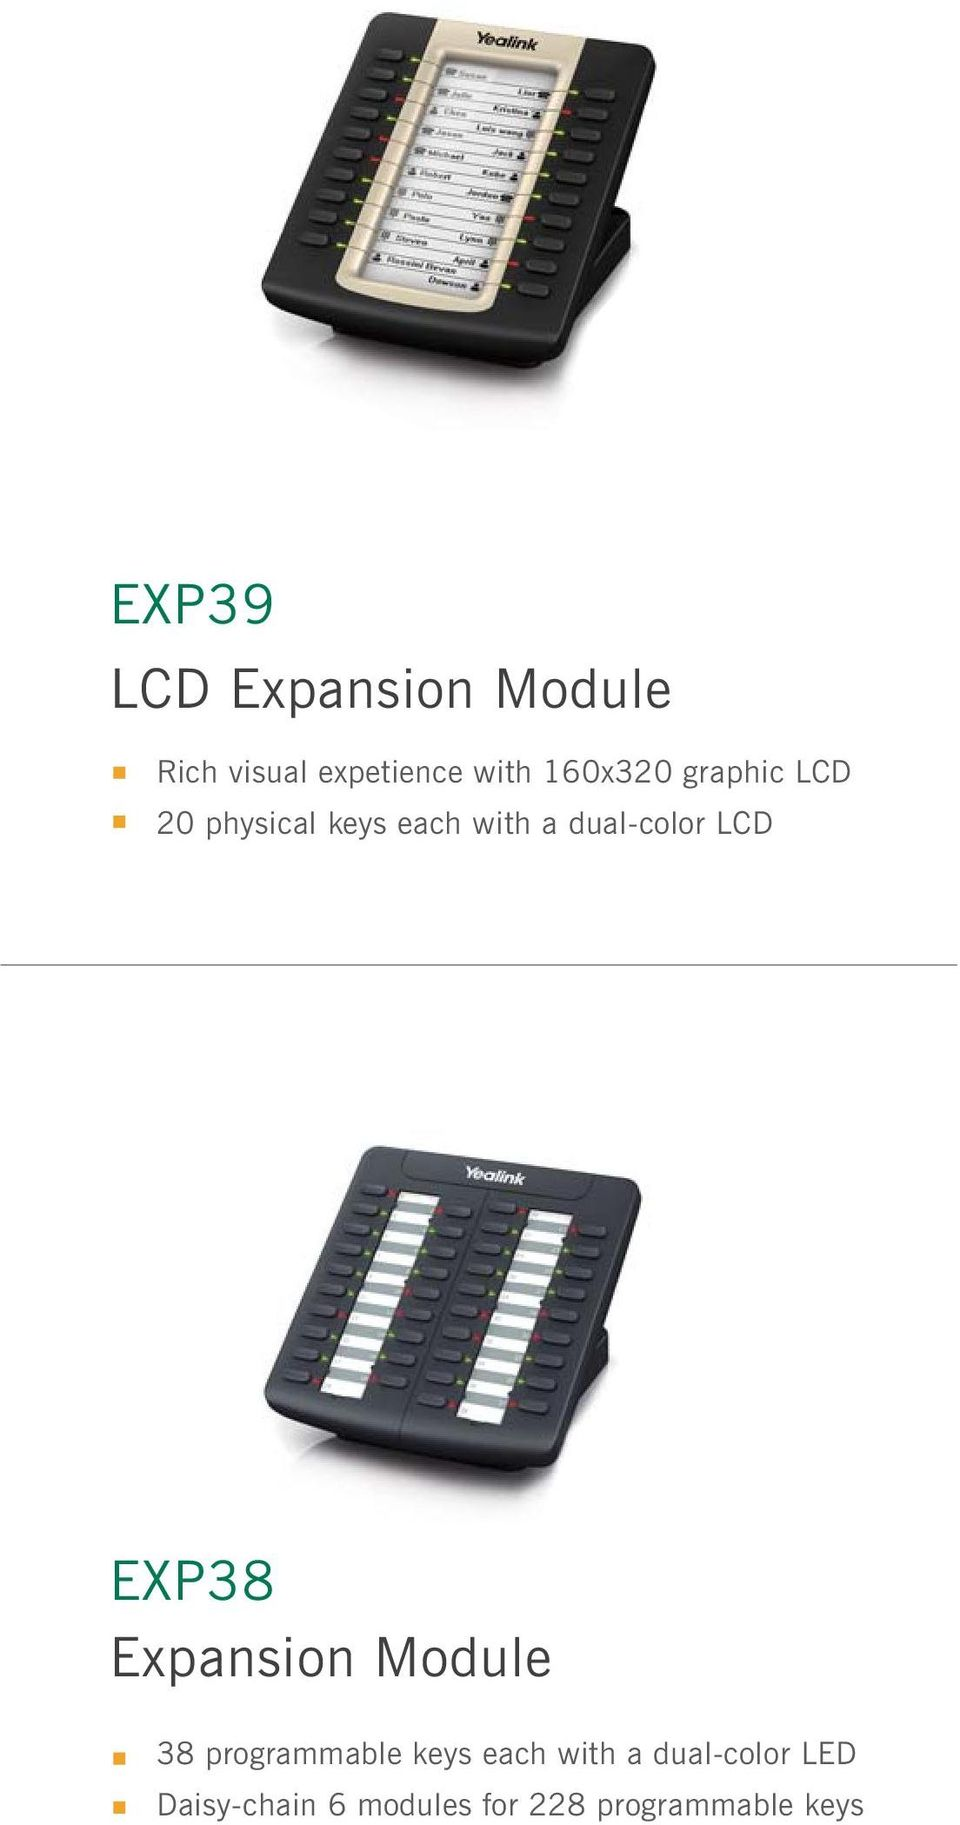 LCD EXP38 Expansion Module 38 programmable keys each with a